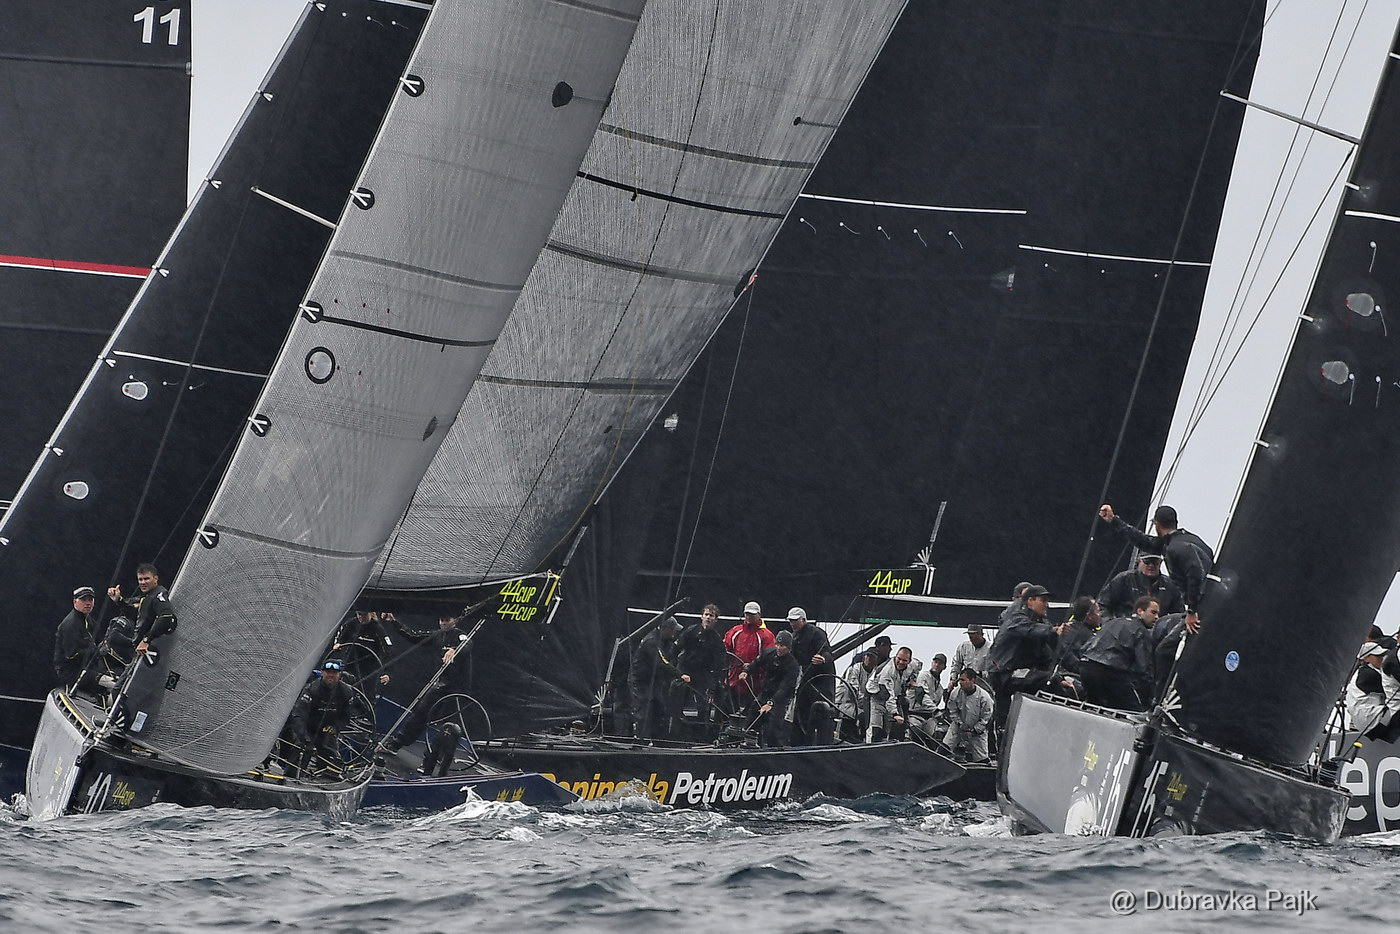 ADRIS 44CUP ROVINJ – RC 44, MAY 2019 ROVINJ